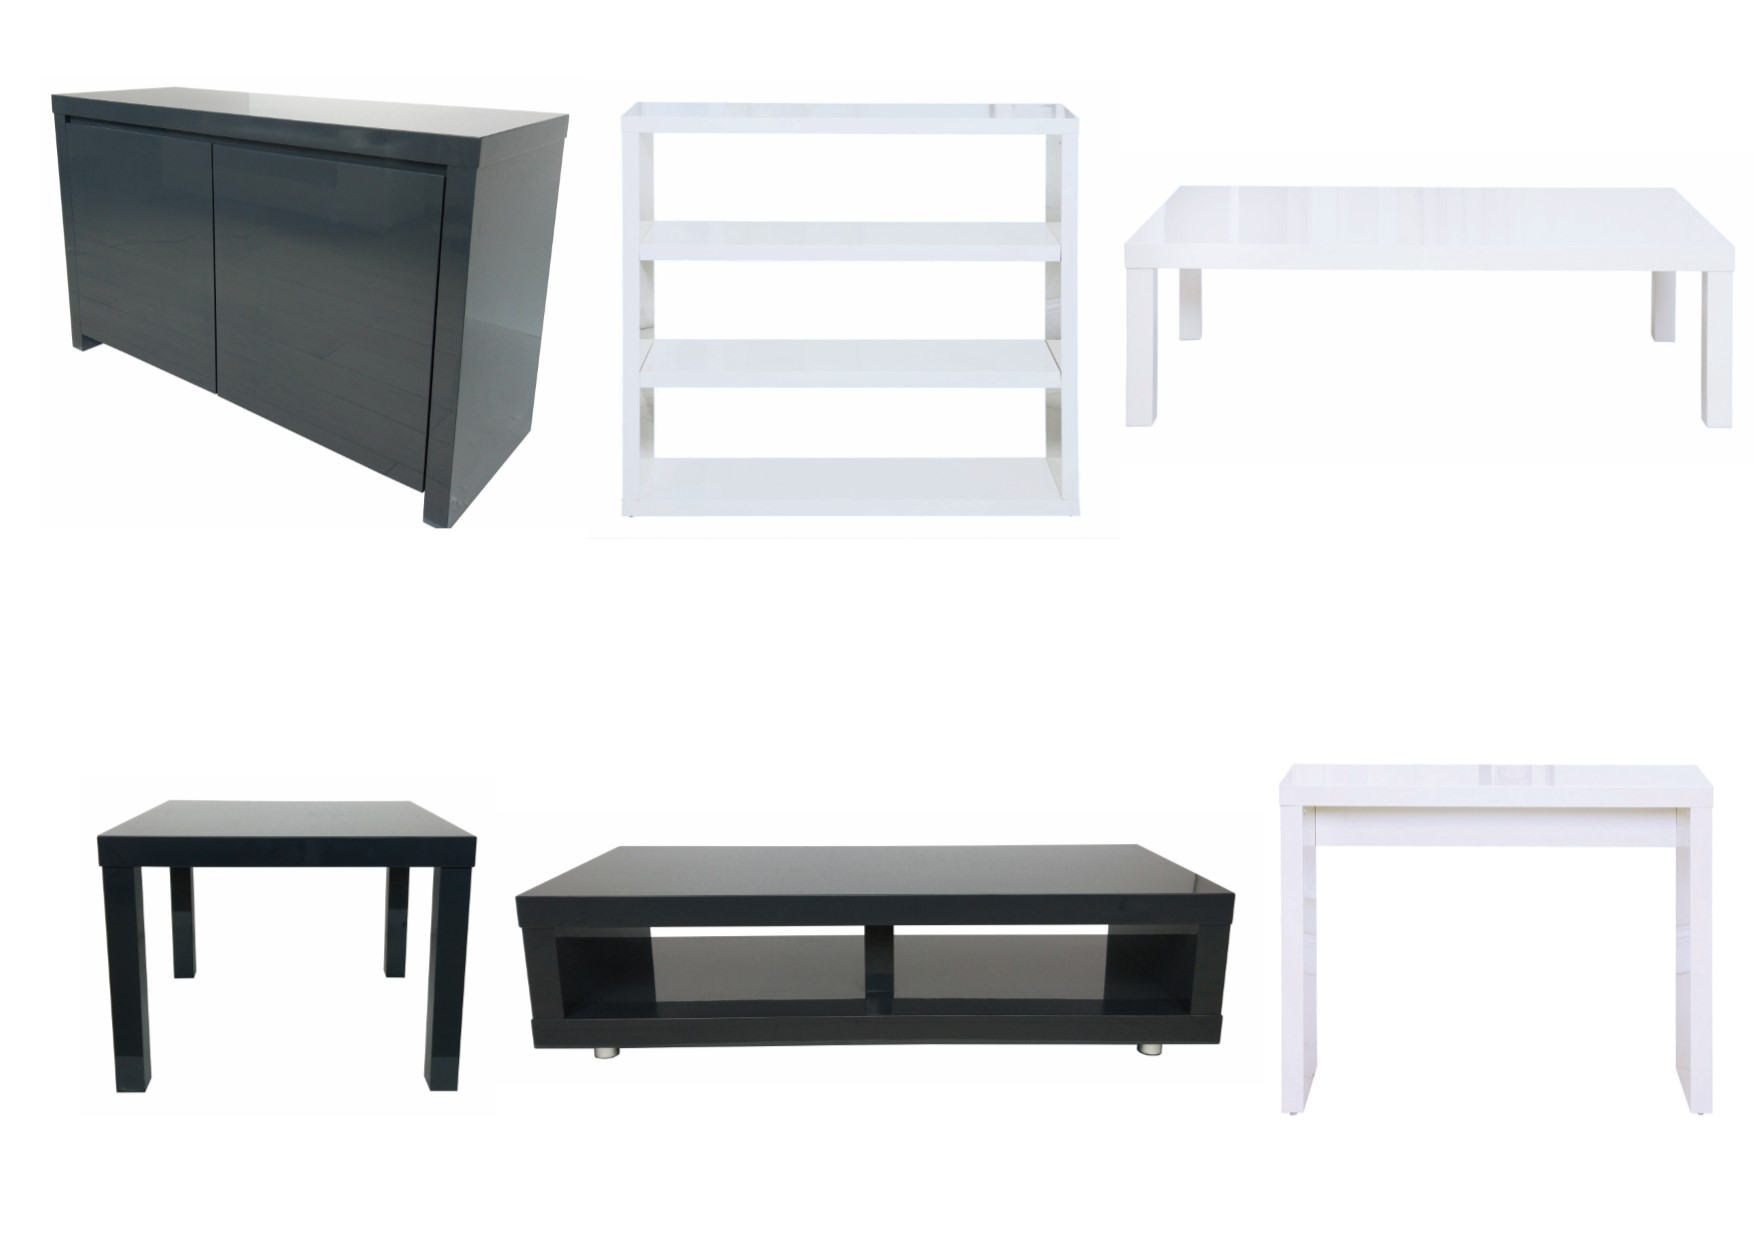 Puro High Gloss Living Room Furniture - Tables Storage TV Stand ...